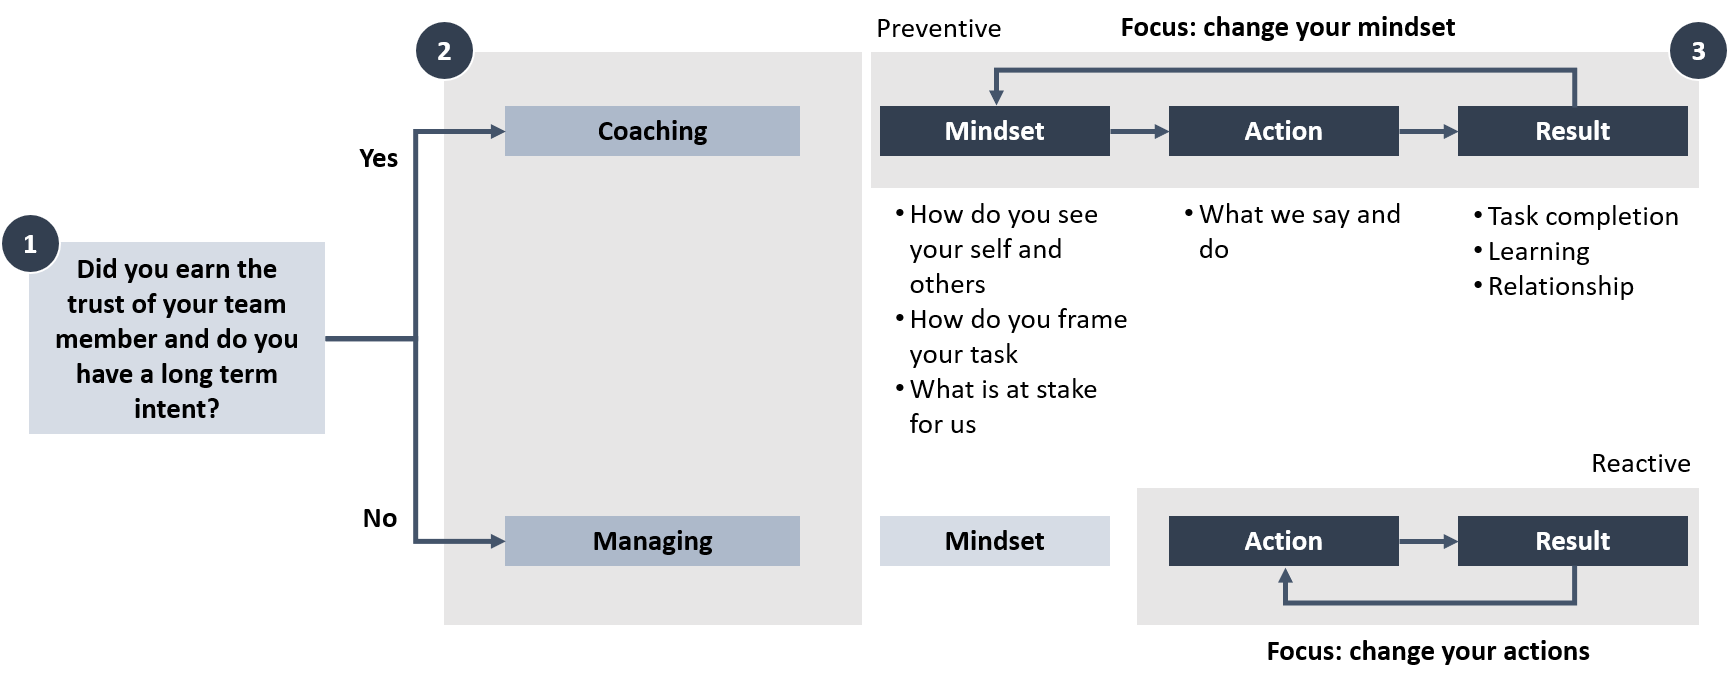 action science STRATZR coaching versus managing